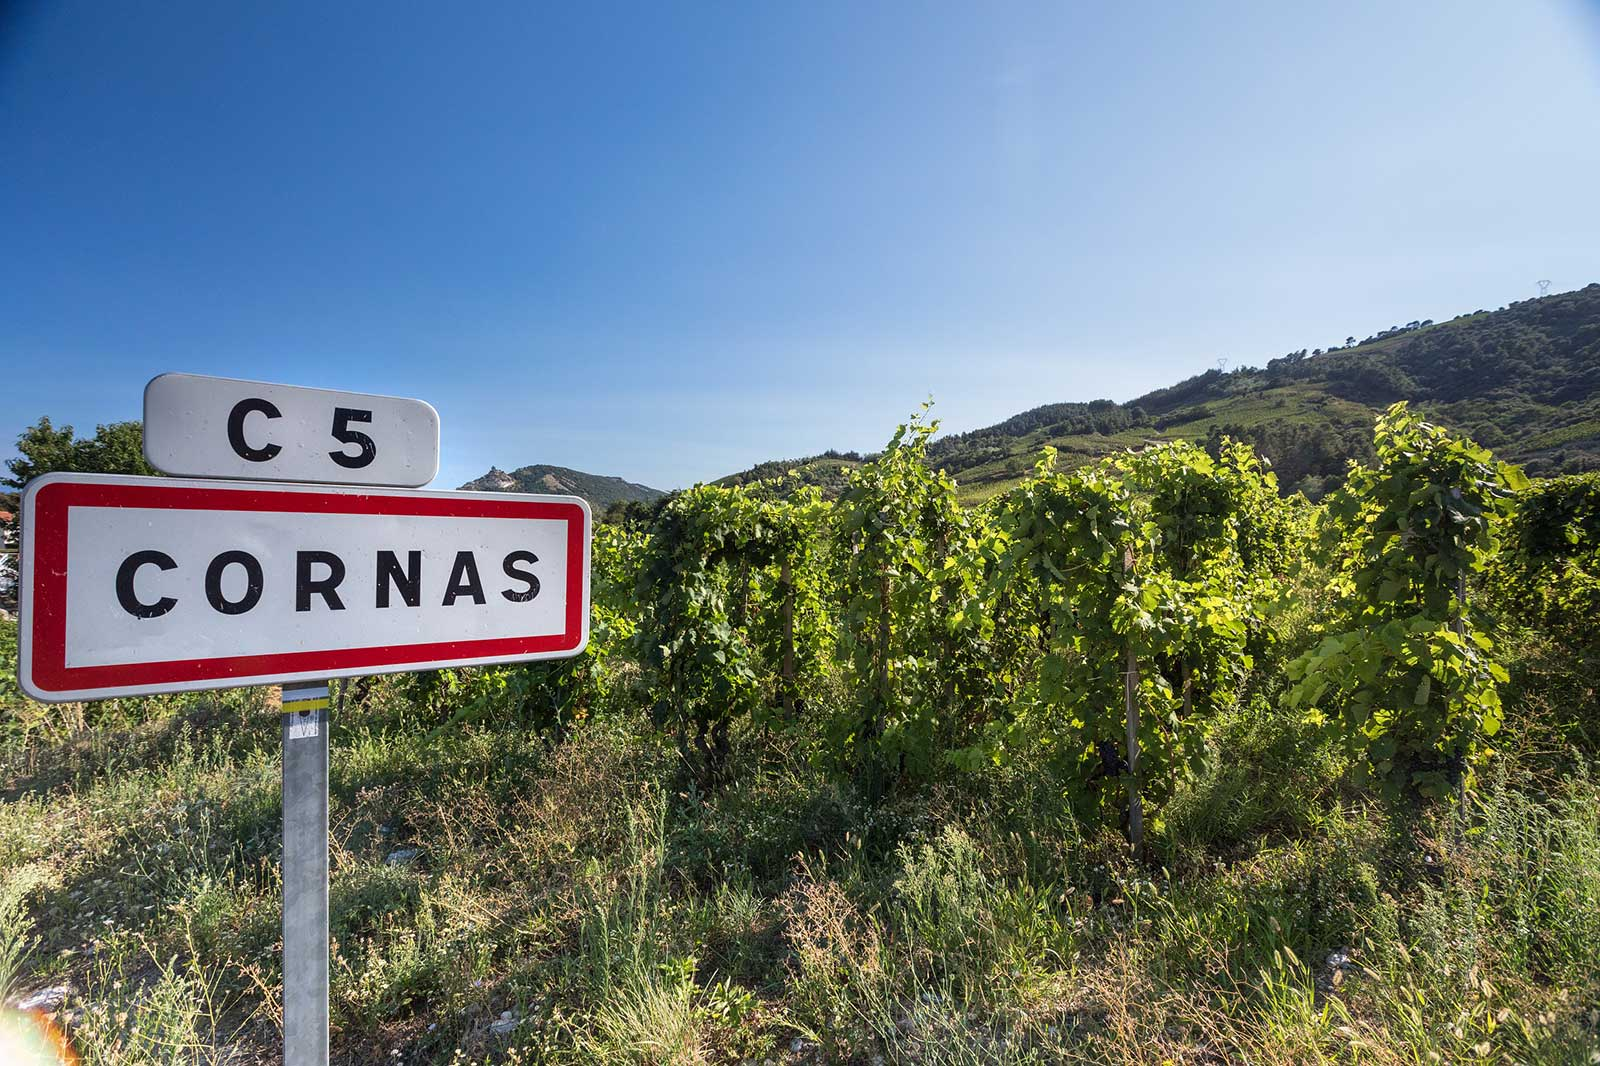 The appellation shares its name with the village of Cornas. ©Bernard Favre